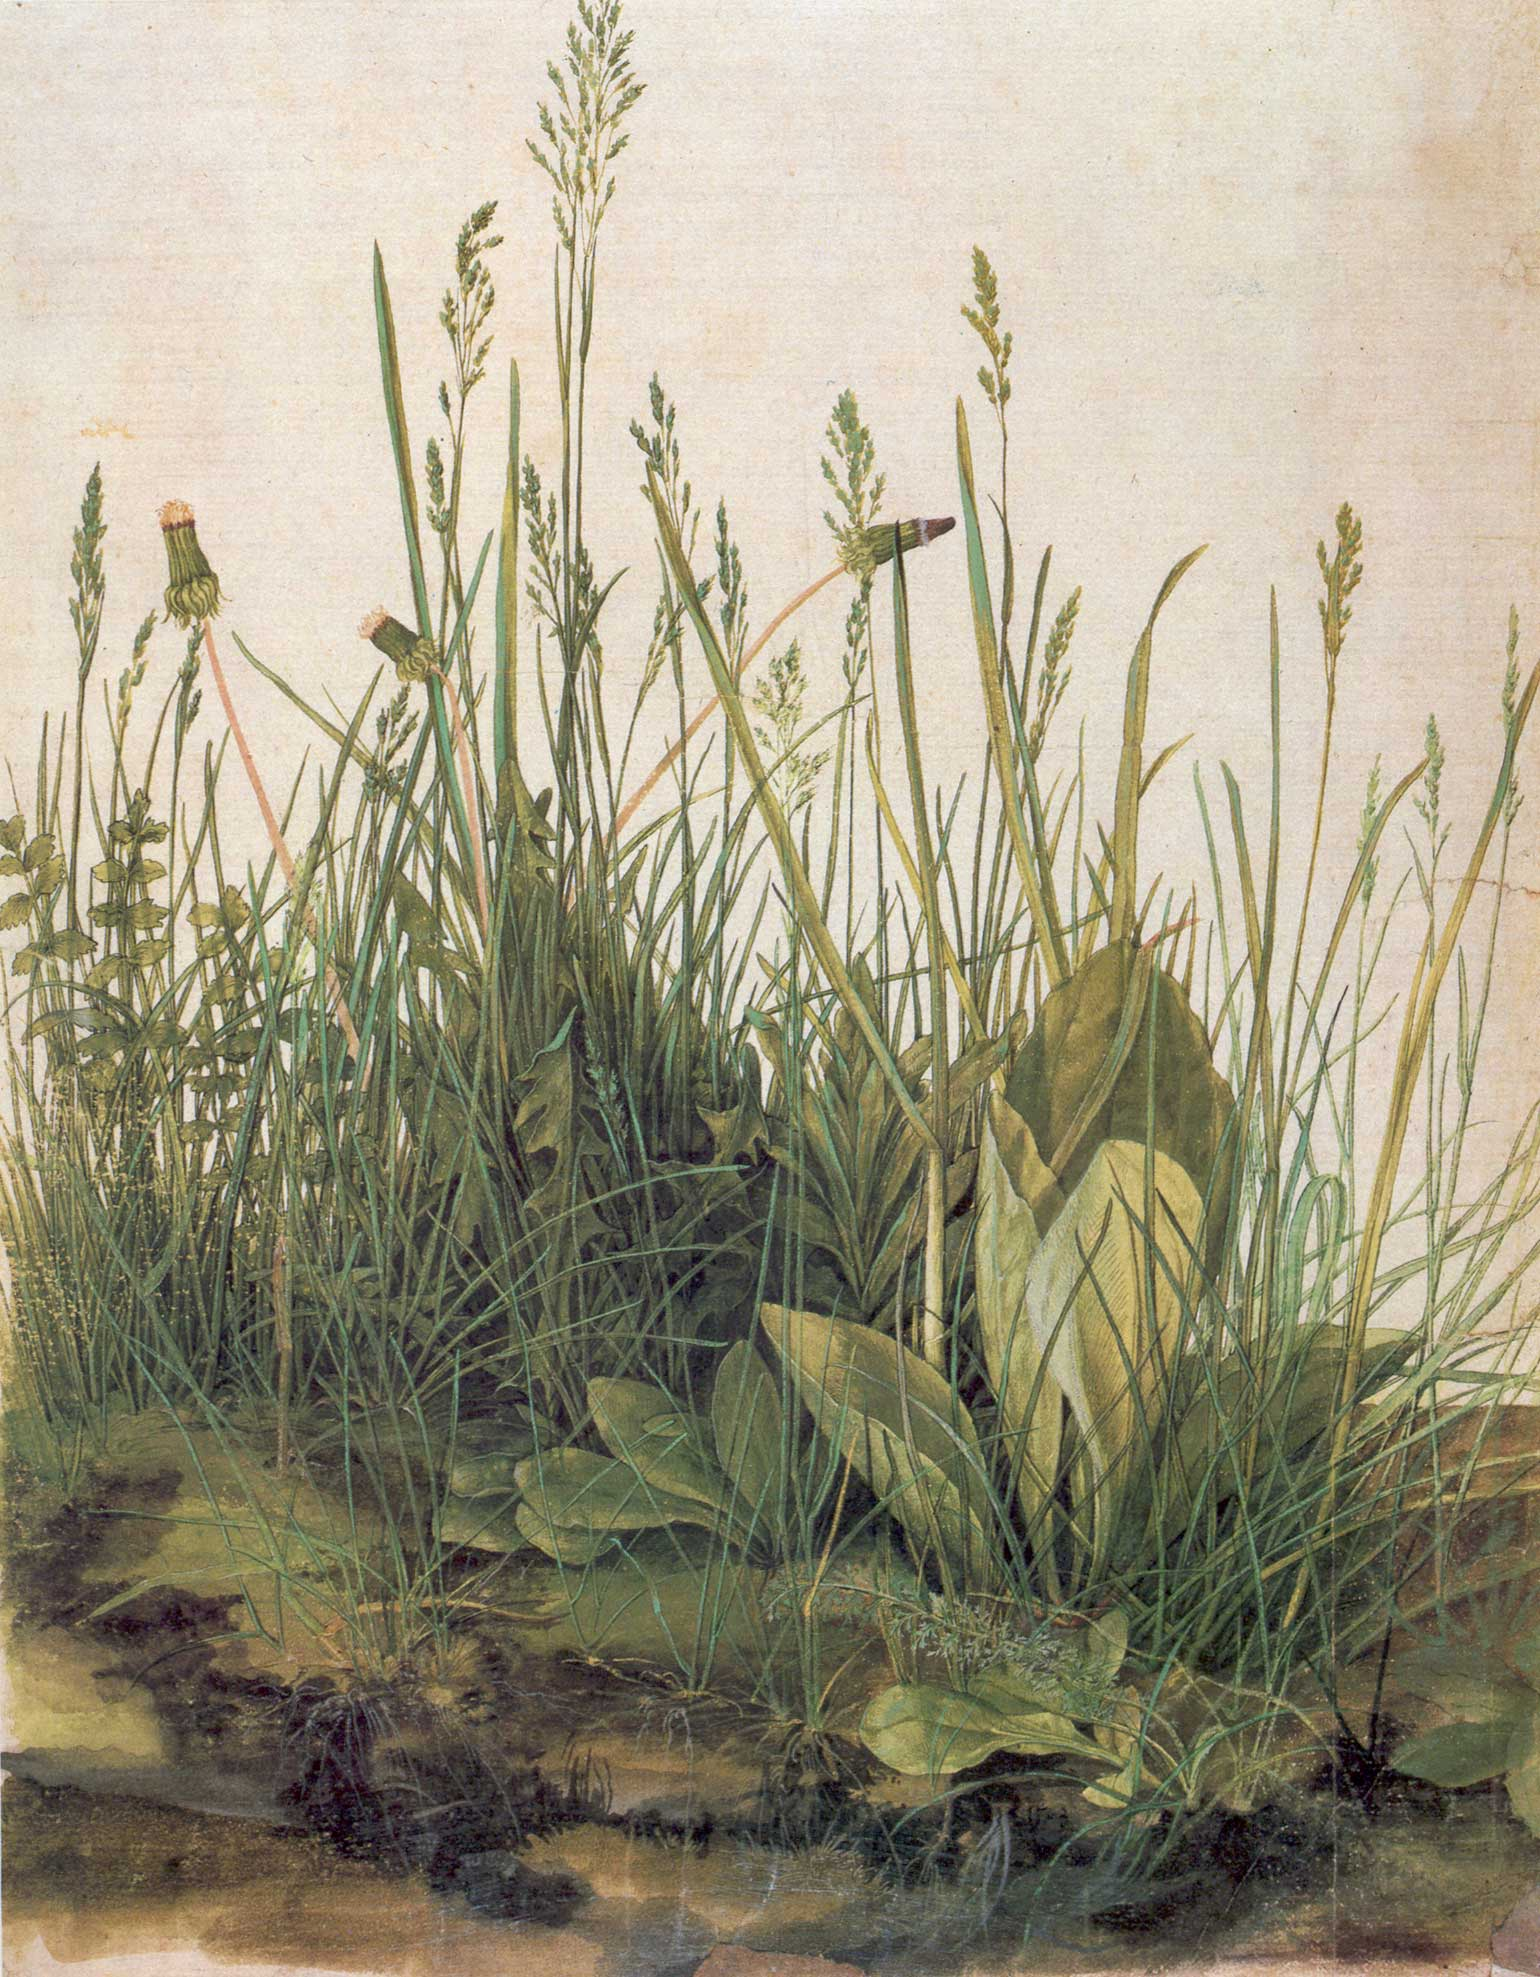 Albrecht Dürer, Great Piece of Turf, 1503, watercolor